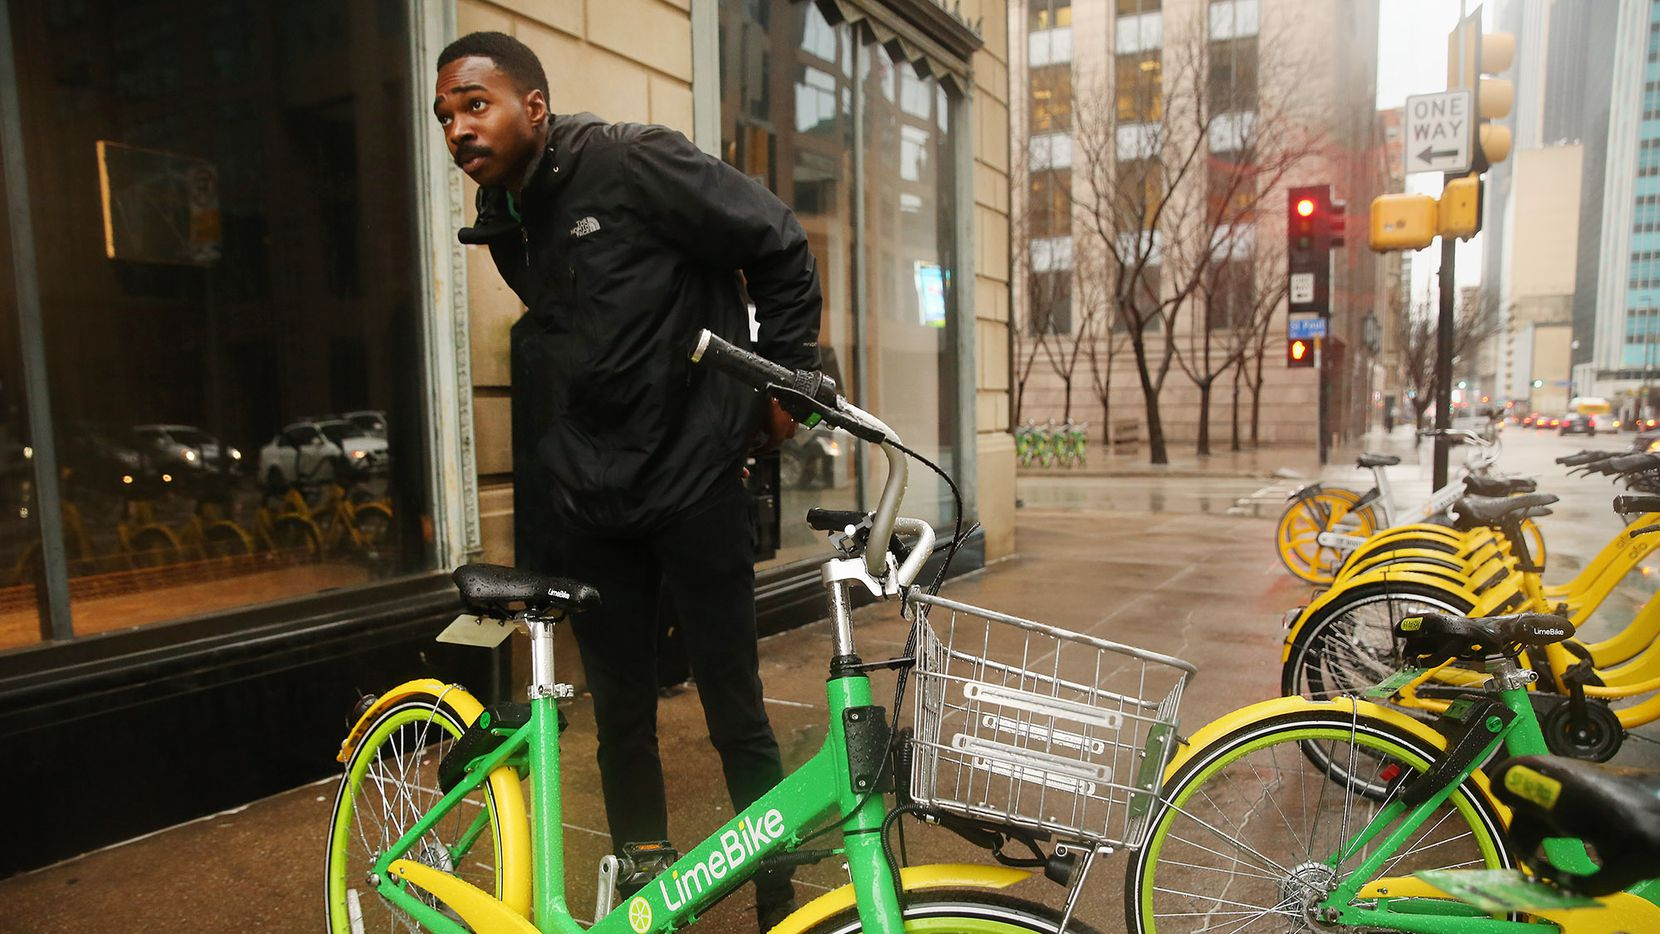 Christian Scull, a lead and operations specialist, rebalances LimeBike bicycles in downtown Dallas on Feb. 28, 2018.